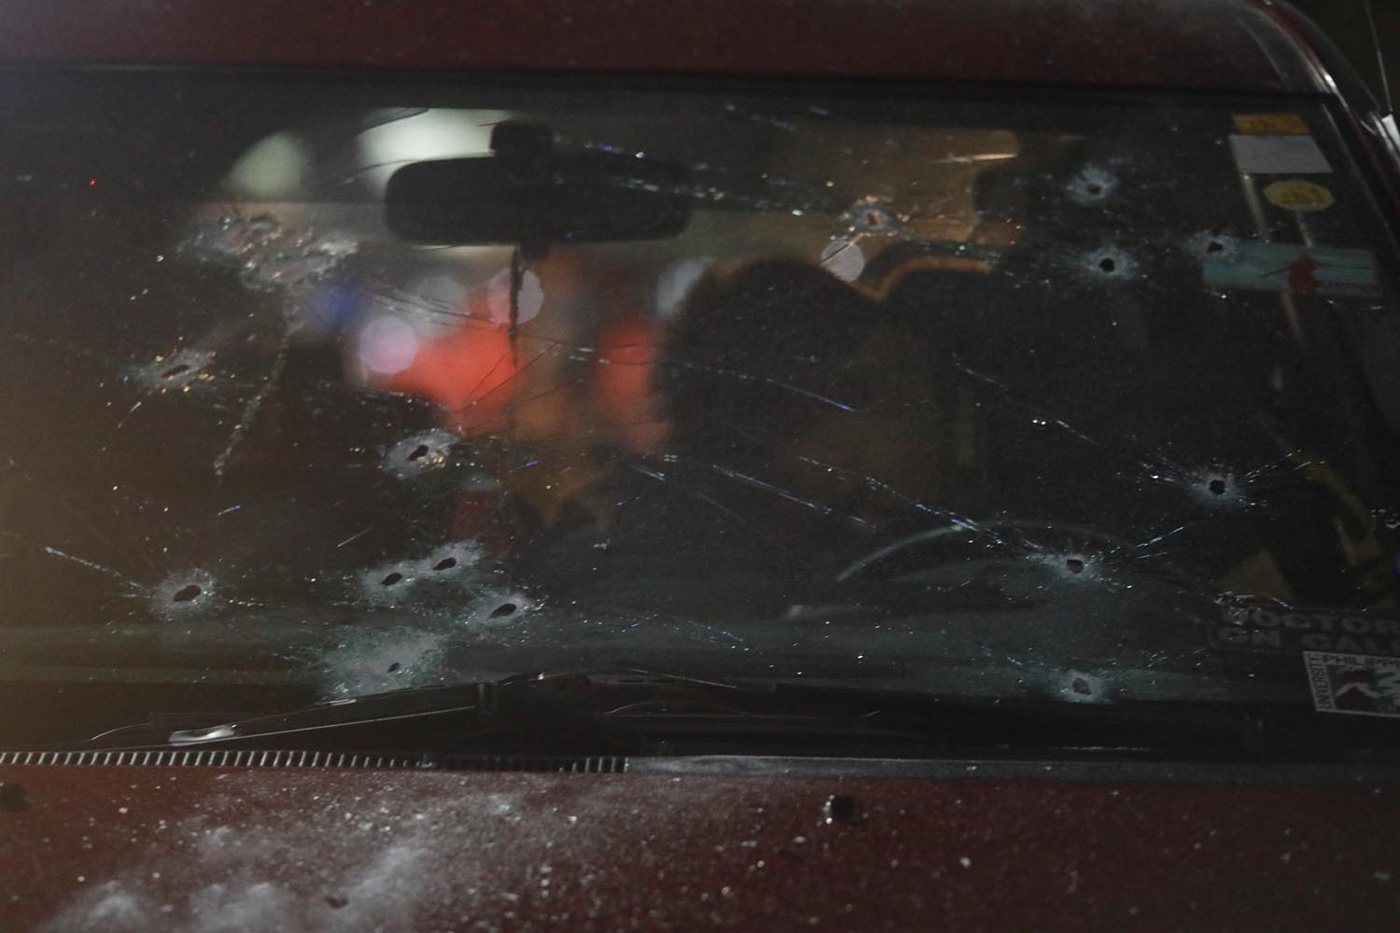 Scene of the Crime Operatives (SOCO) inspect a bullet riddled Toyota Innova at Don Antonio Heights in Quezon City on Friday, May 11, 2018. Quezon City Assitant City Prosecutor Rogelio Velasco was shoot driving his car by unidentified gun men and was rush to a hospital and declared dead on arrival. Photo by DARREN LANGIT